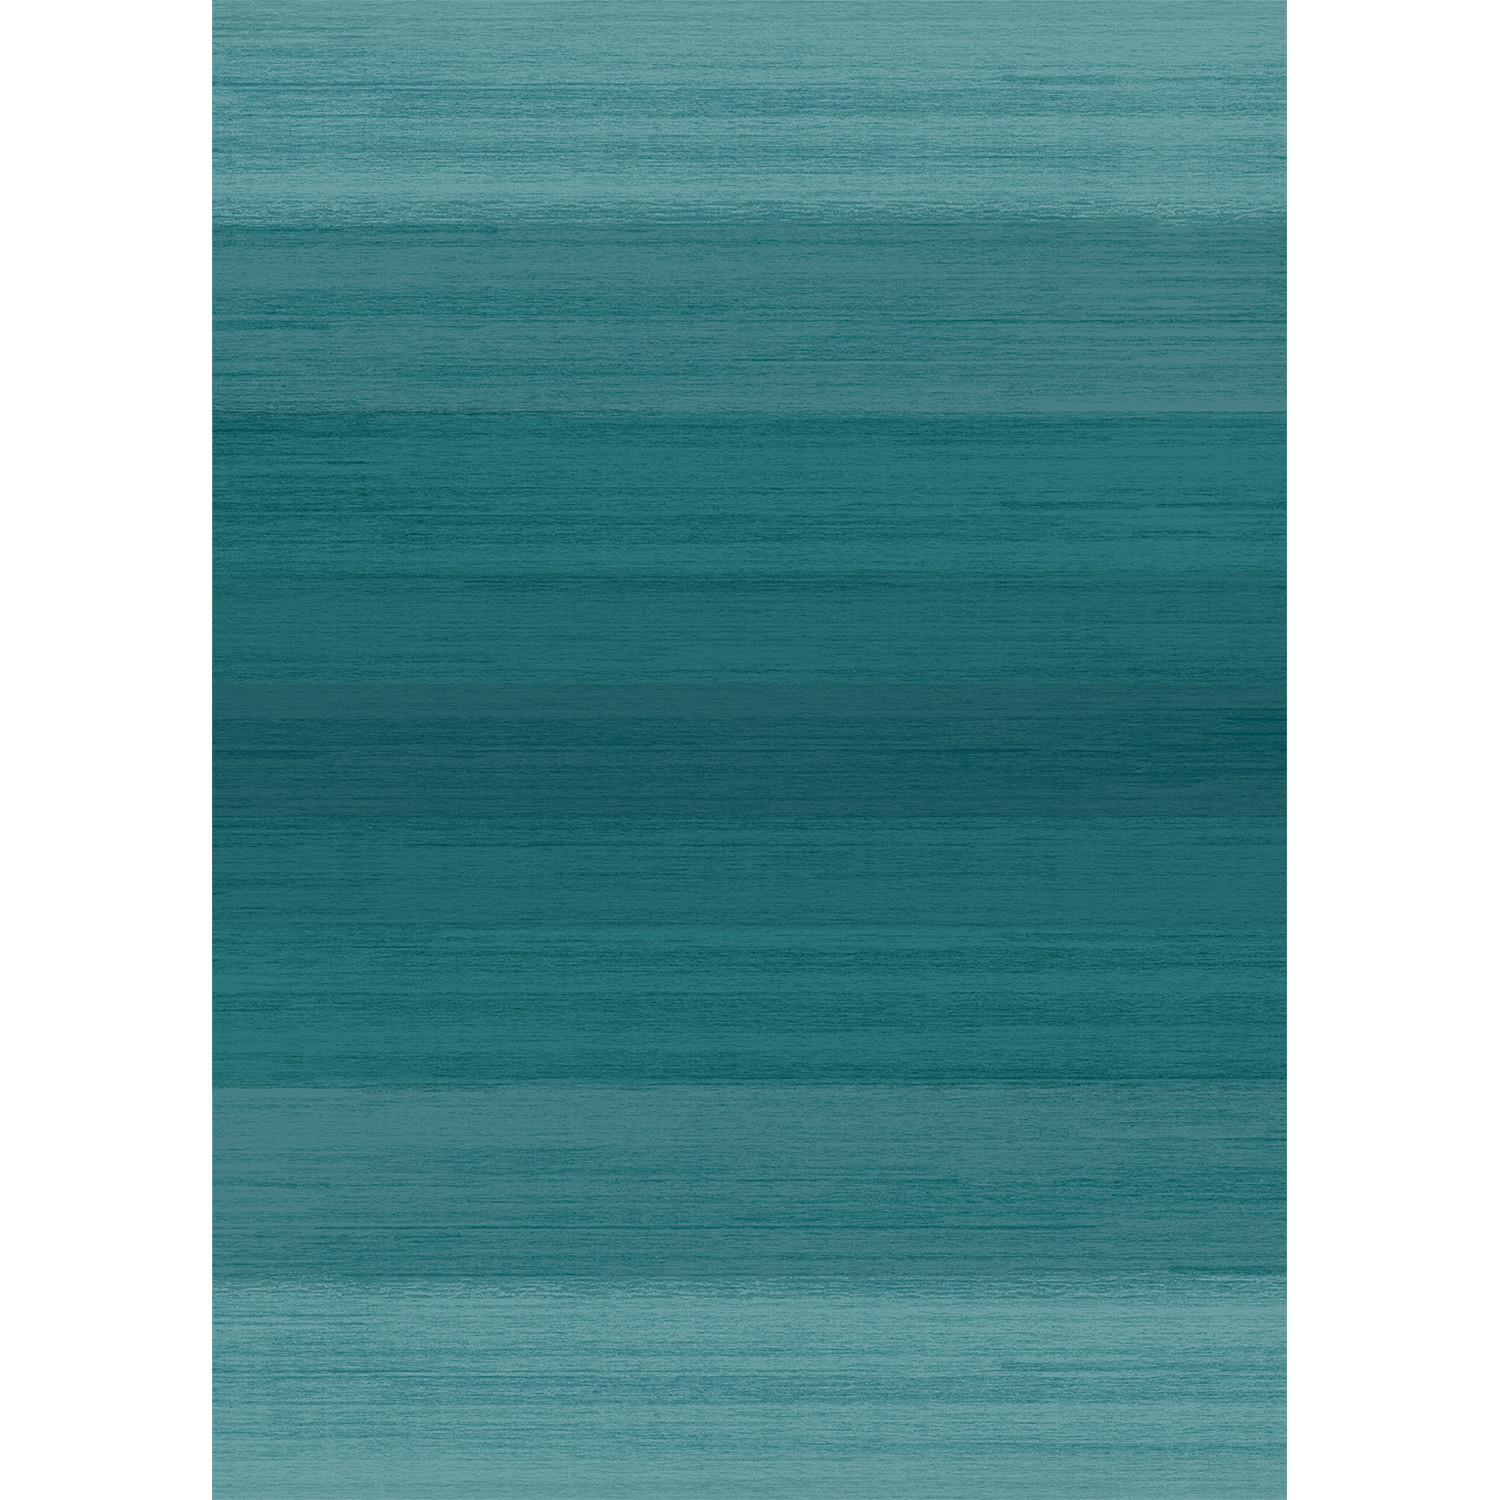 Washable Rug Nonslip Pad Ombre Blue 5 X 7